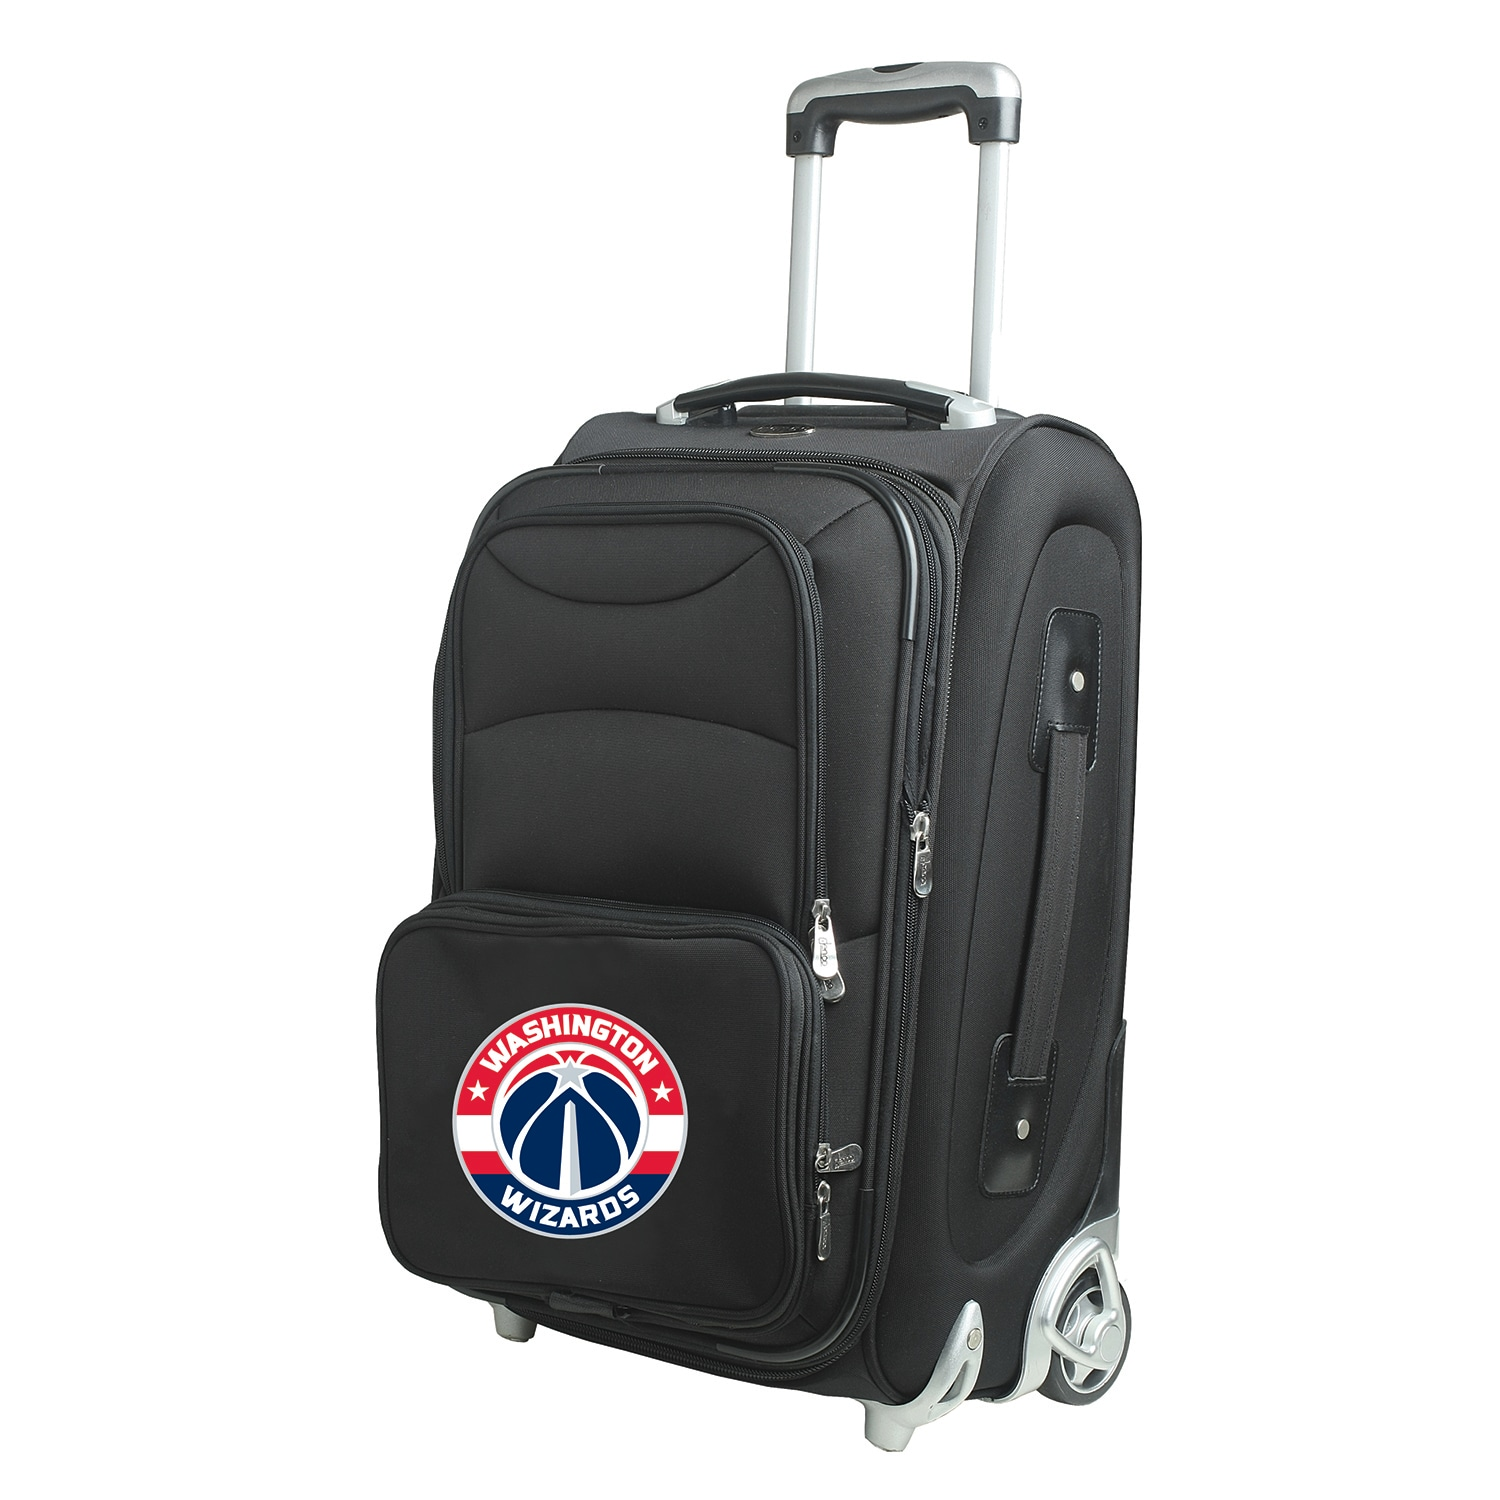 "Washington Wizards 21"" Rolling Carry-On Suitcase"